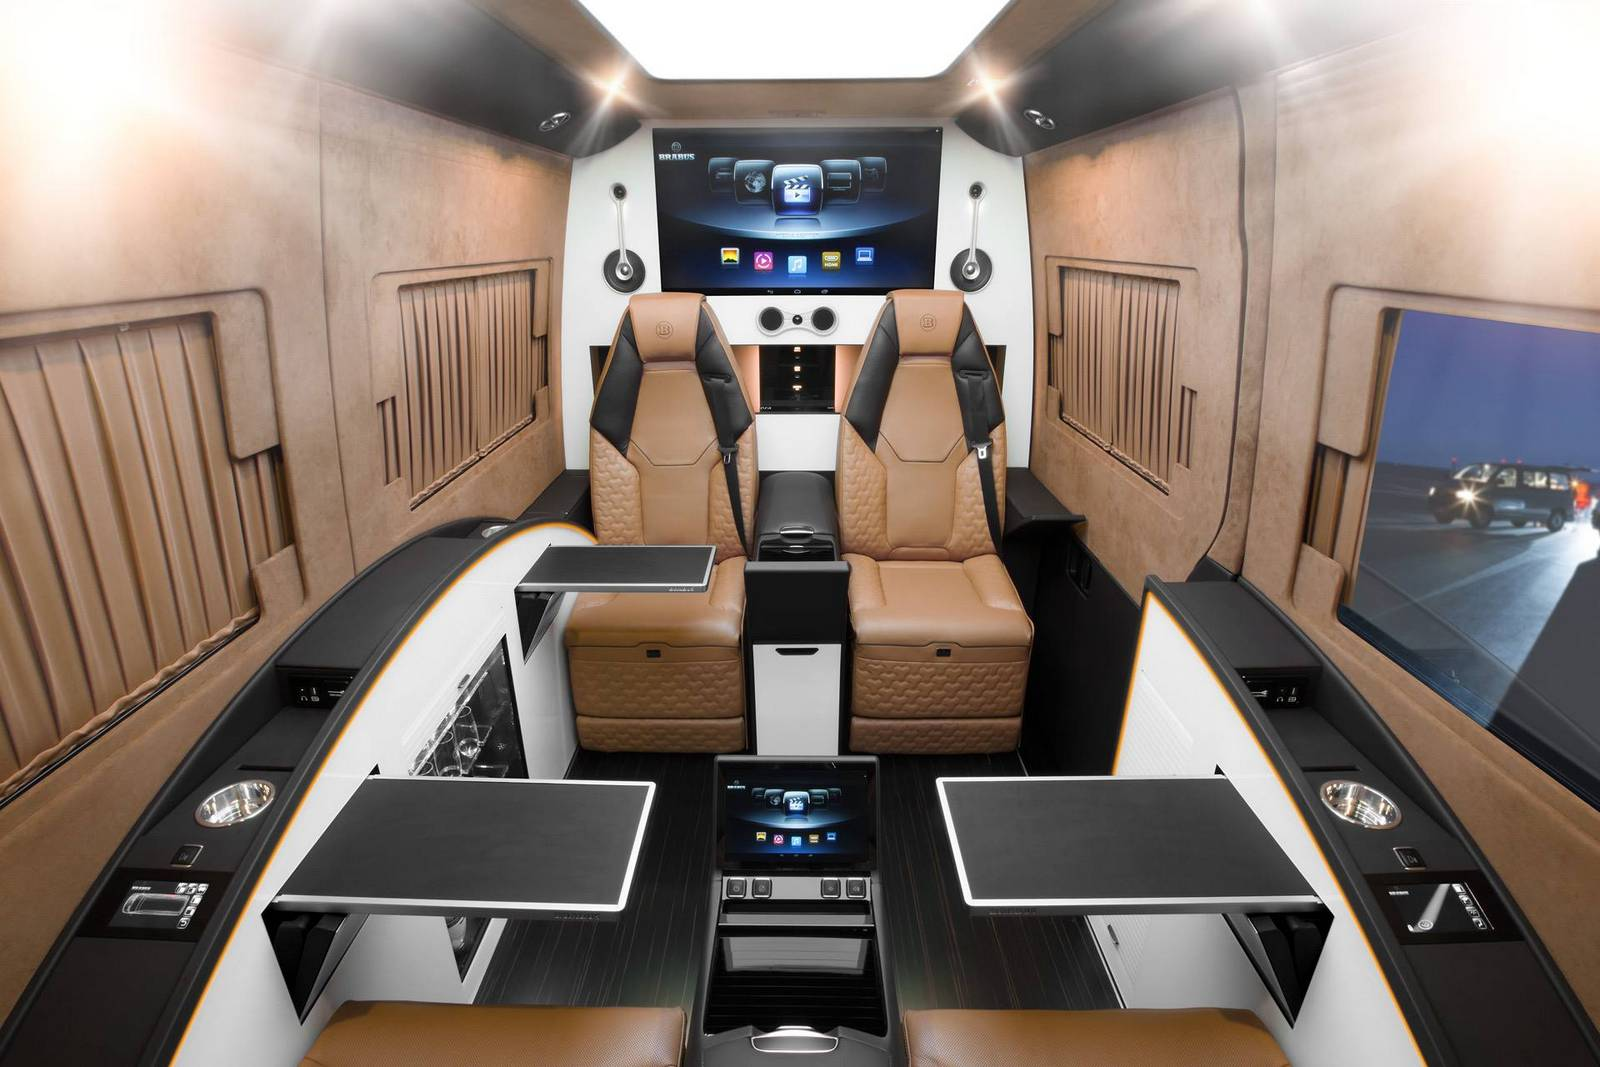 How To Cancel Uber >> Brabus Reveals Ultra-Luxurious Mercedes-Benz Sprinter ...